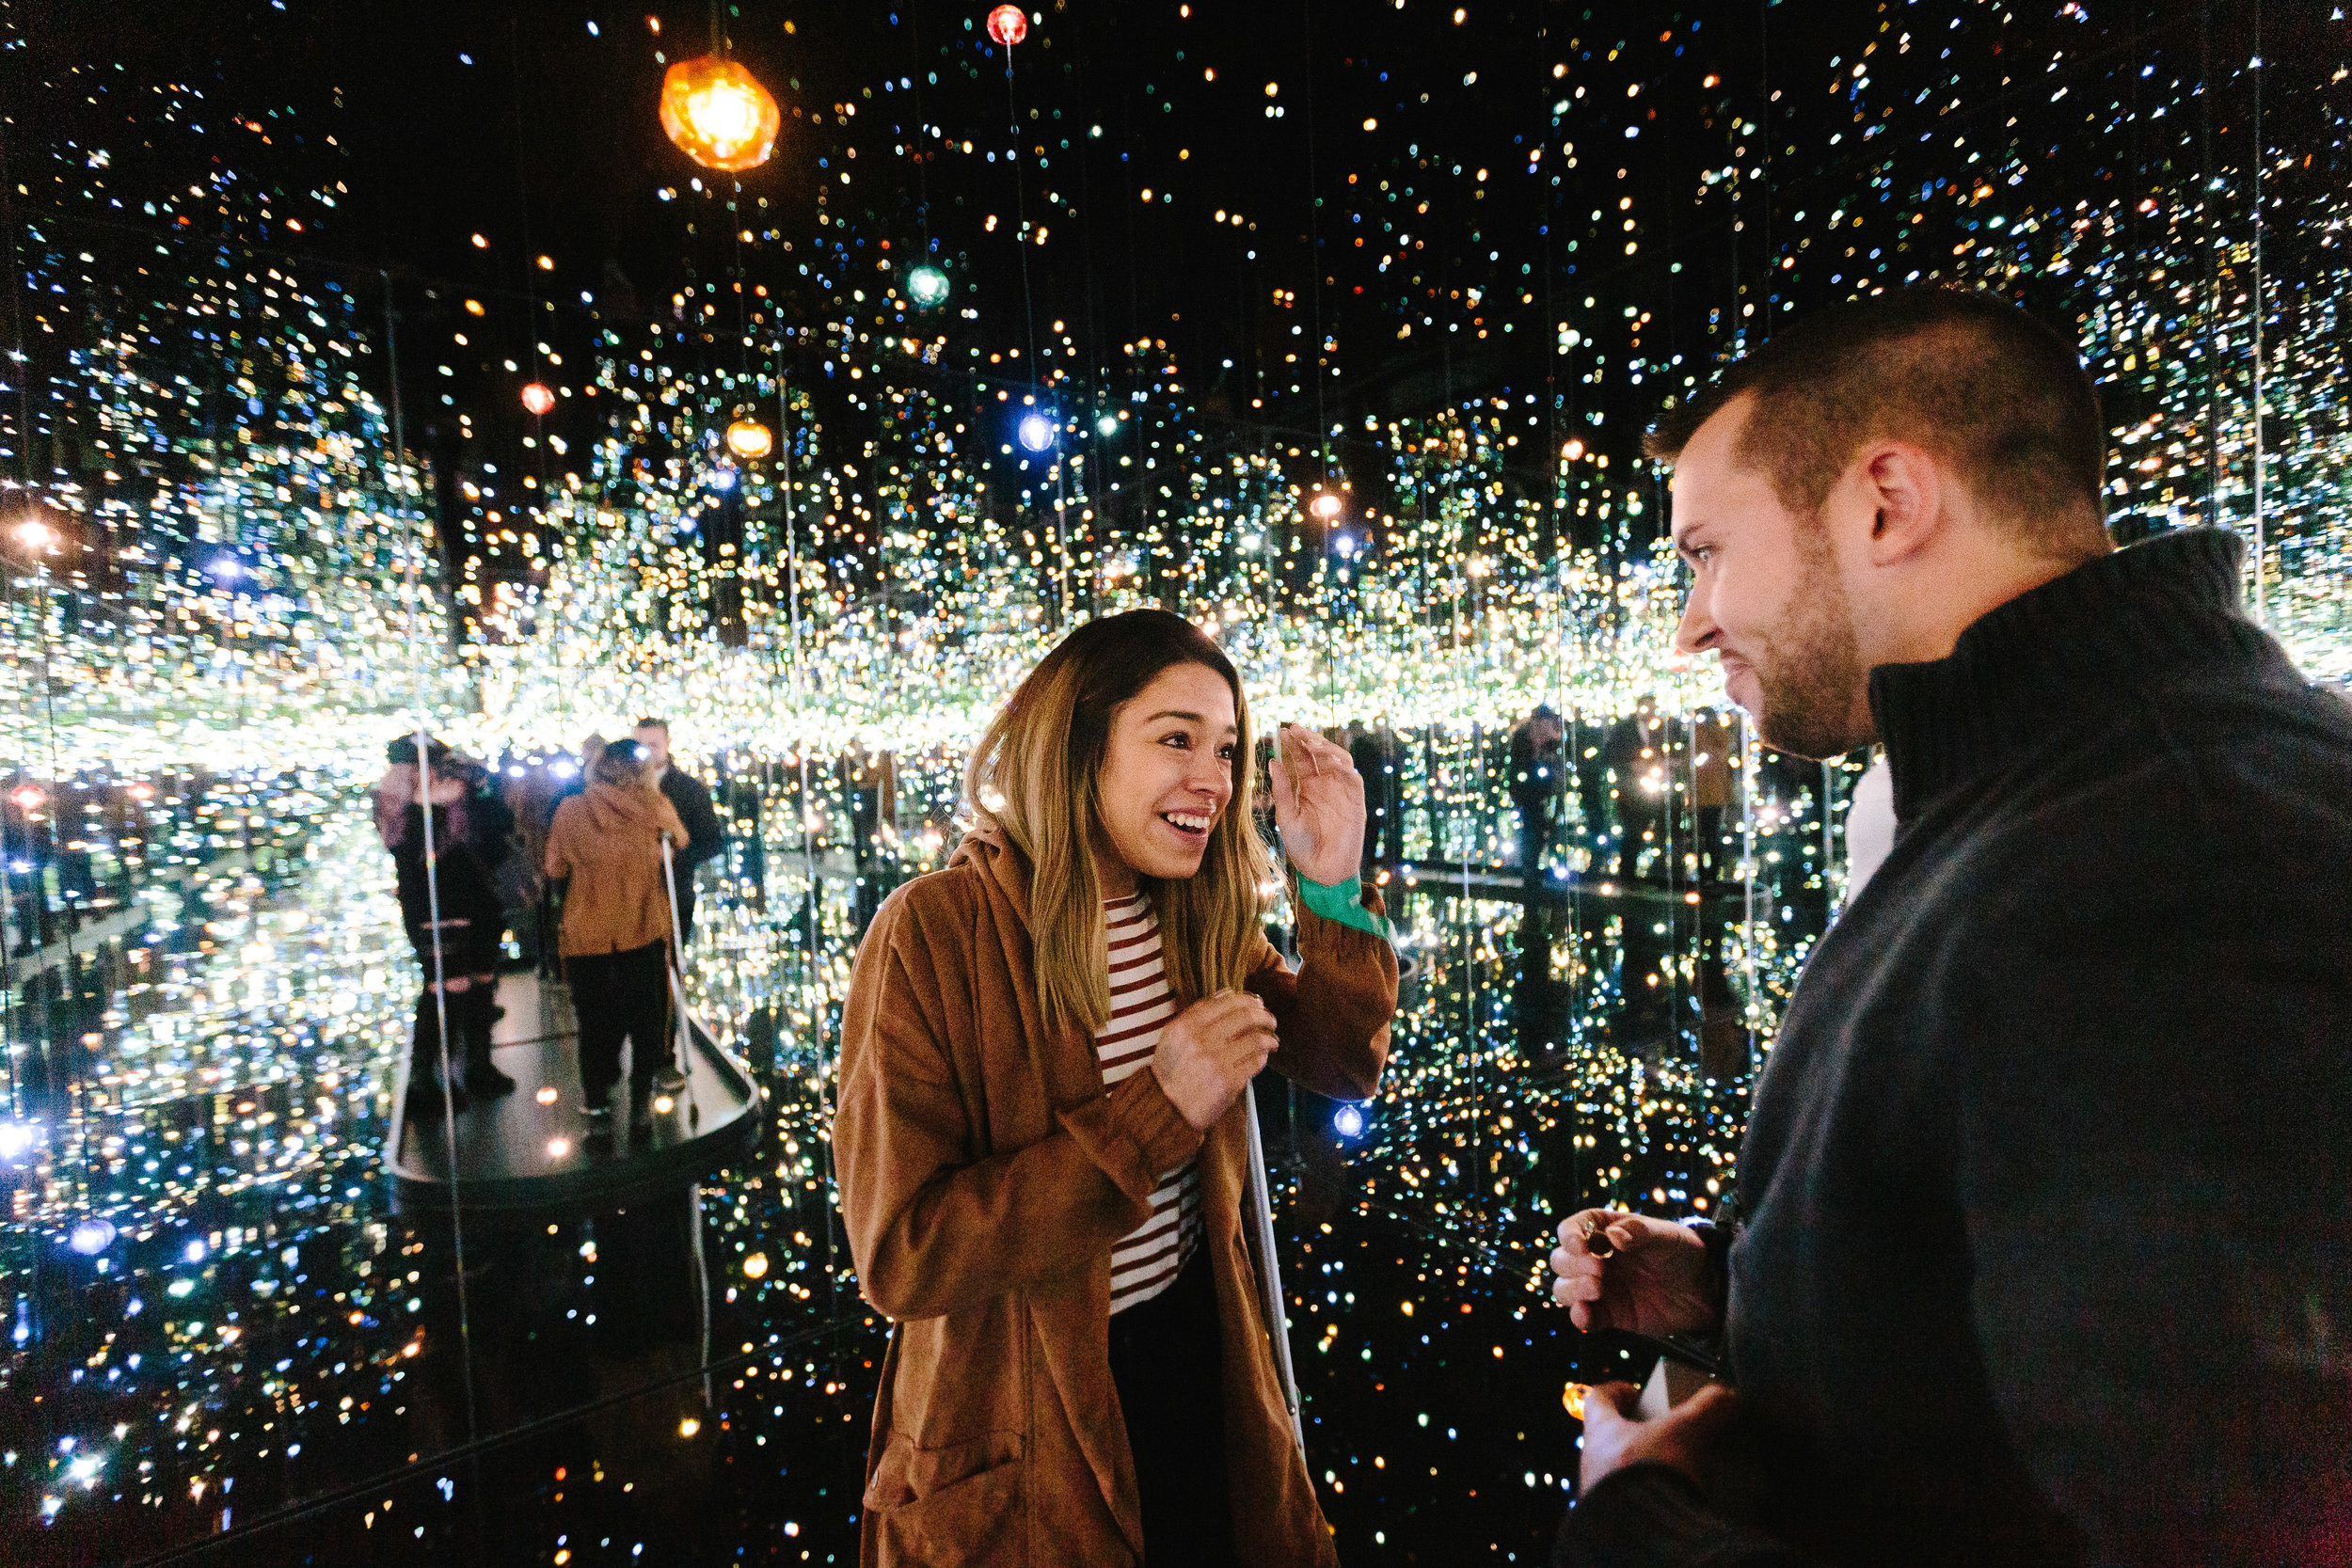 high_museum_infinity_mirrors_Yayoi_Kusama_proposal_amazing_atlanta_real_couple_engagement_ideas_epic_1010.jpg